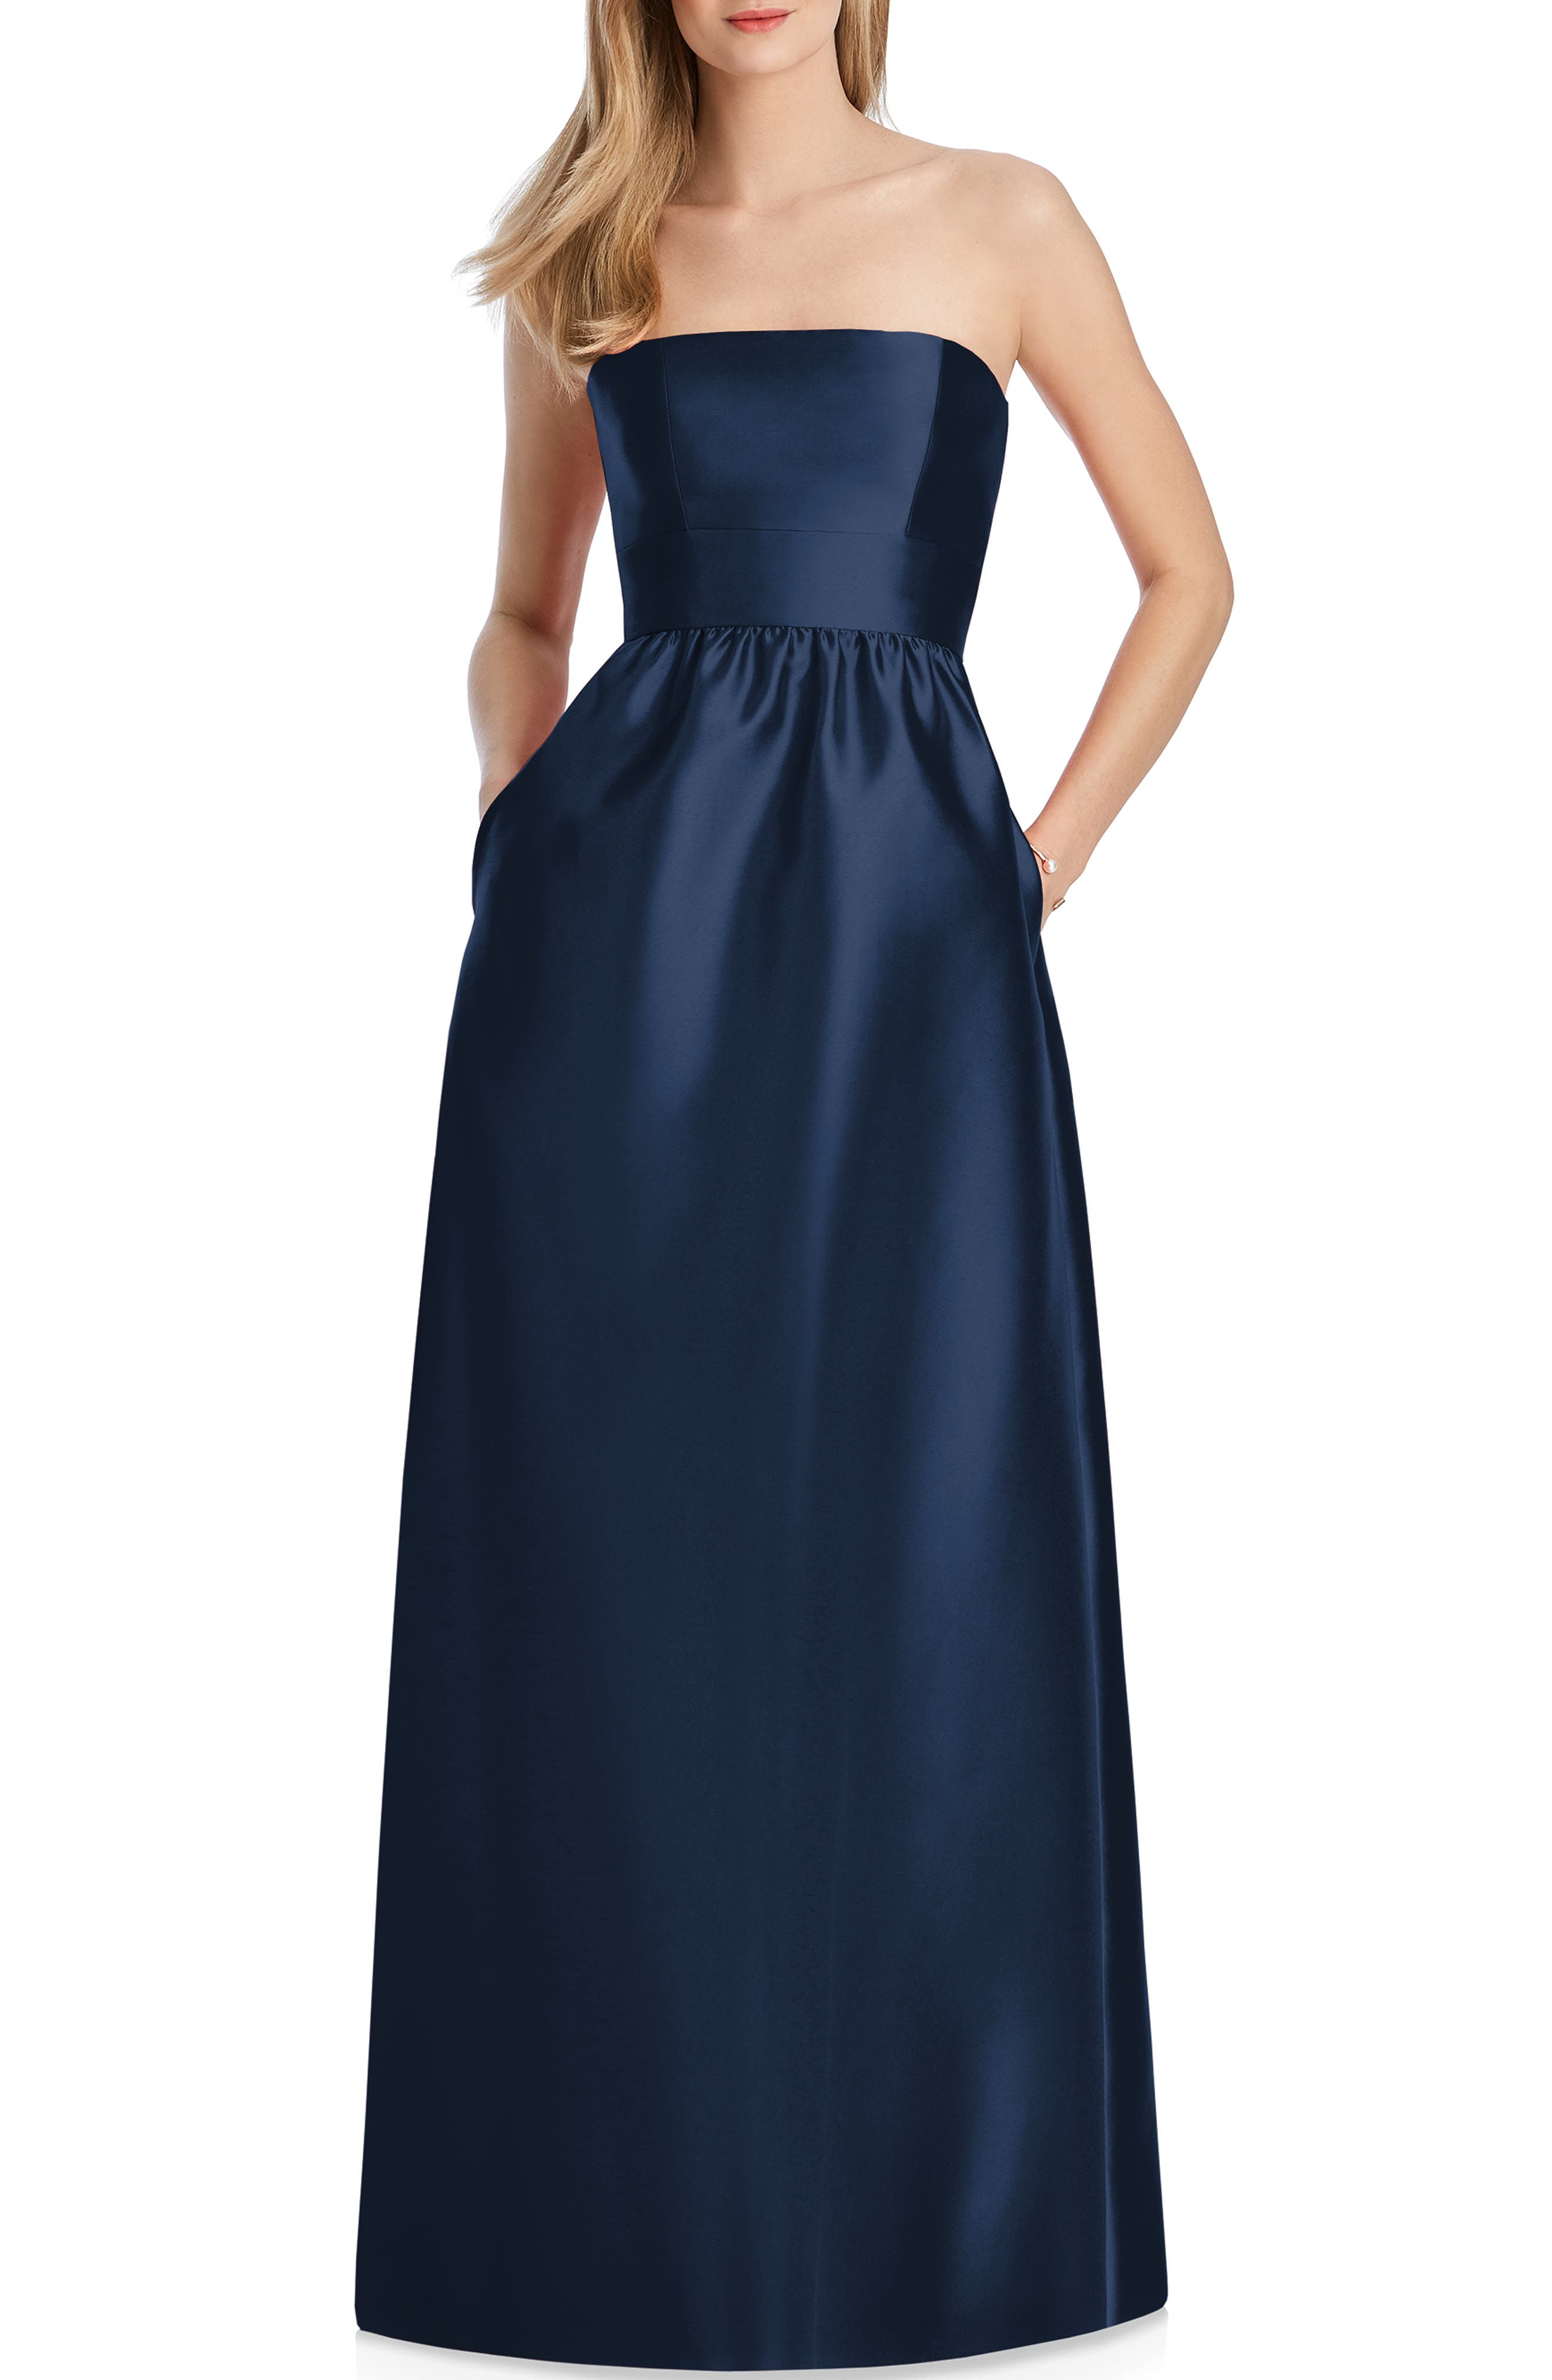 Lela Rose Bridesmaid Strapless Sateen Gown, Blue